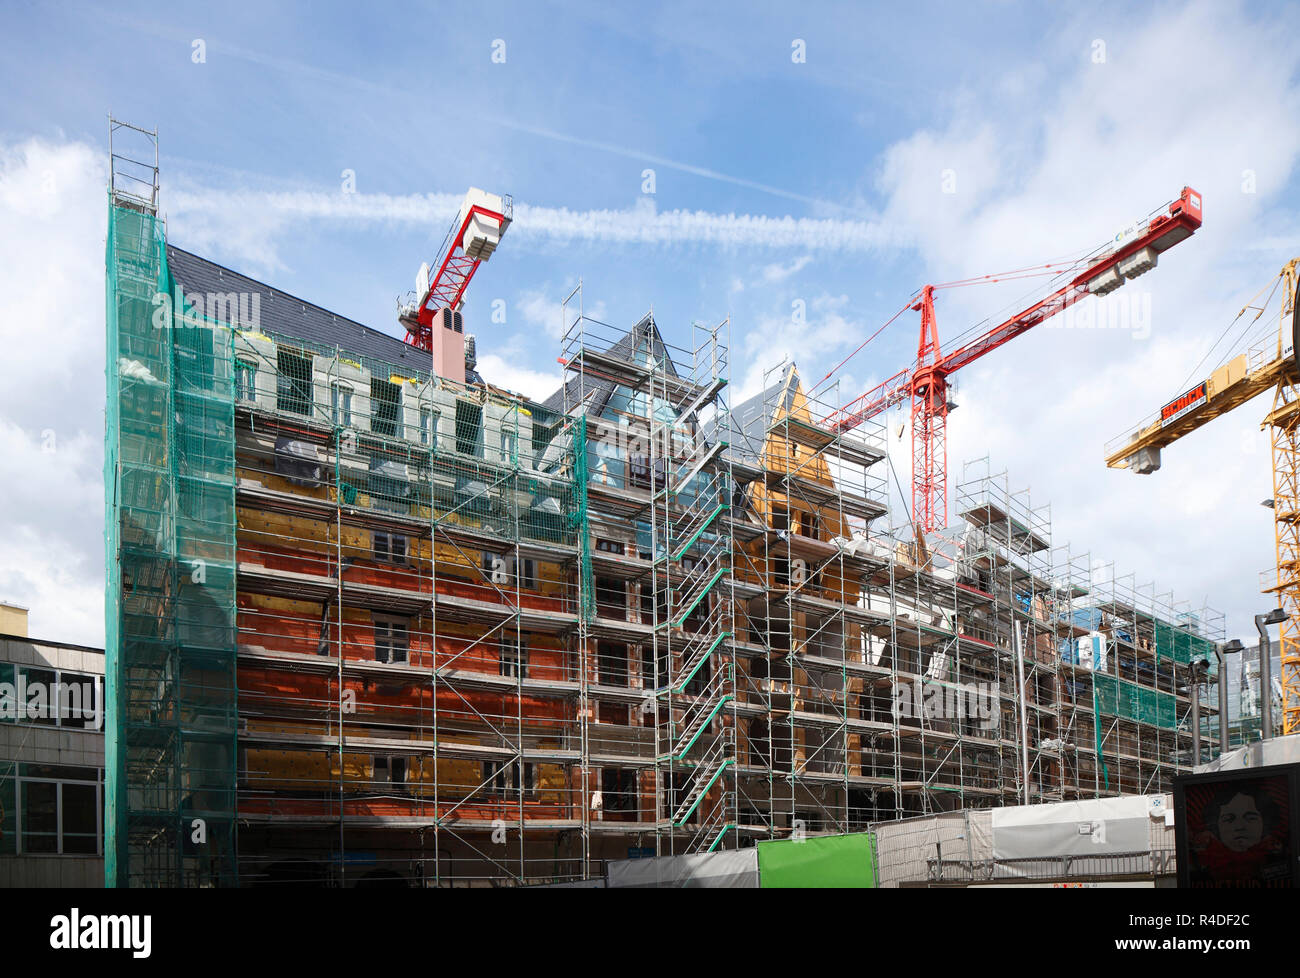 dom roemer construction site - Stock Image